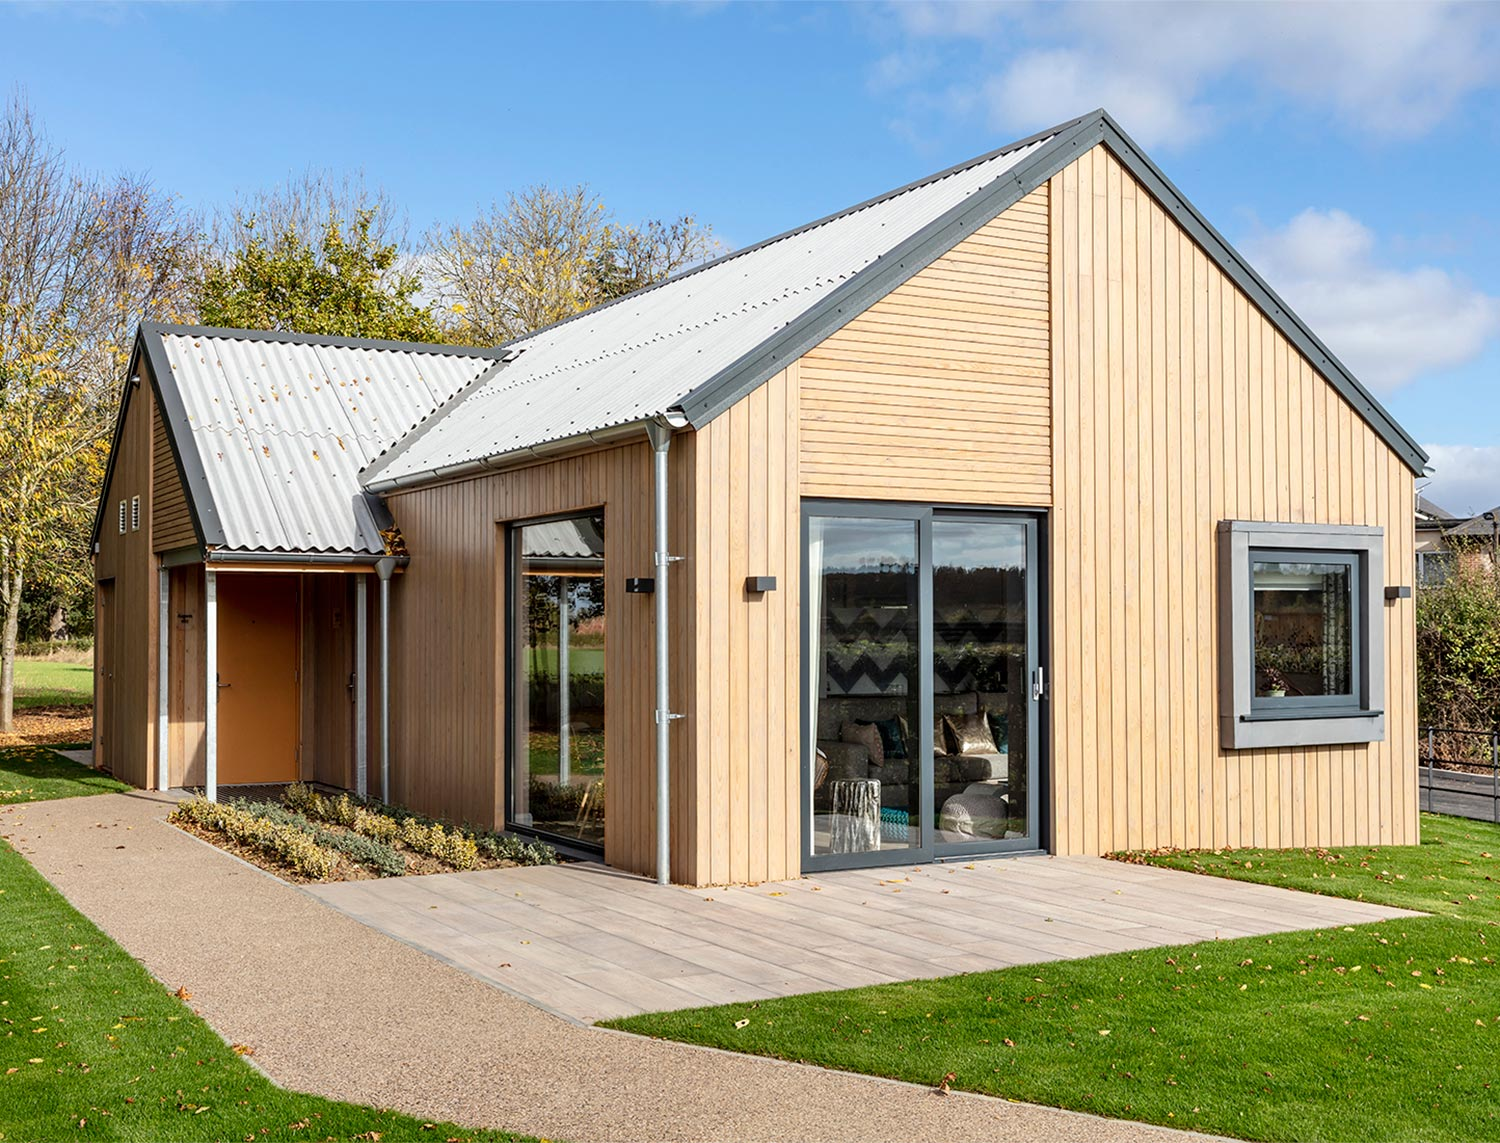 Birch & Aspen Lodges, Park Farm Hotel